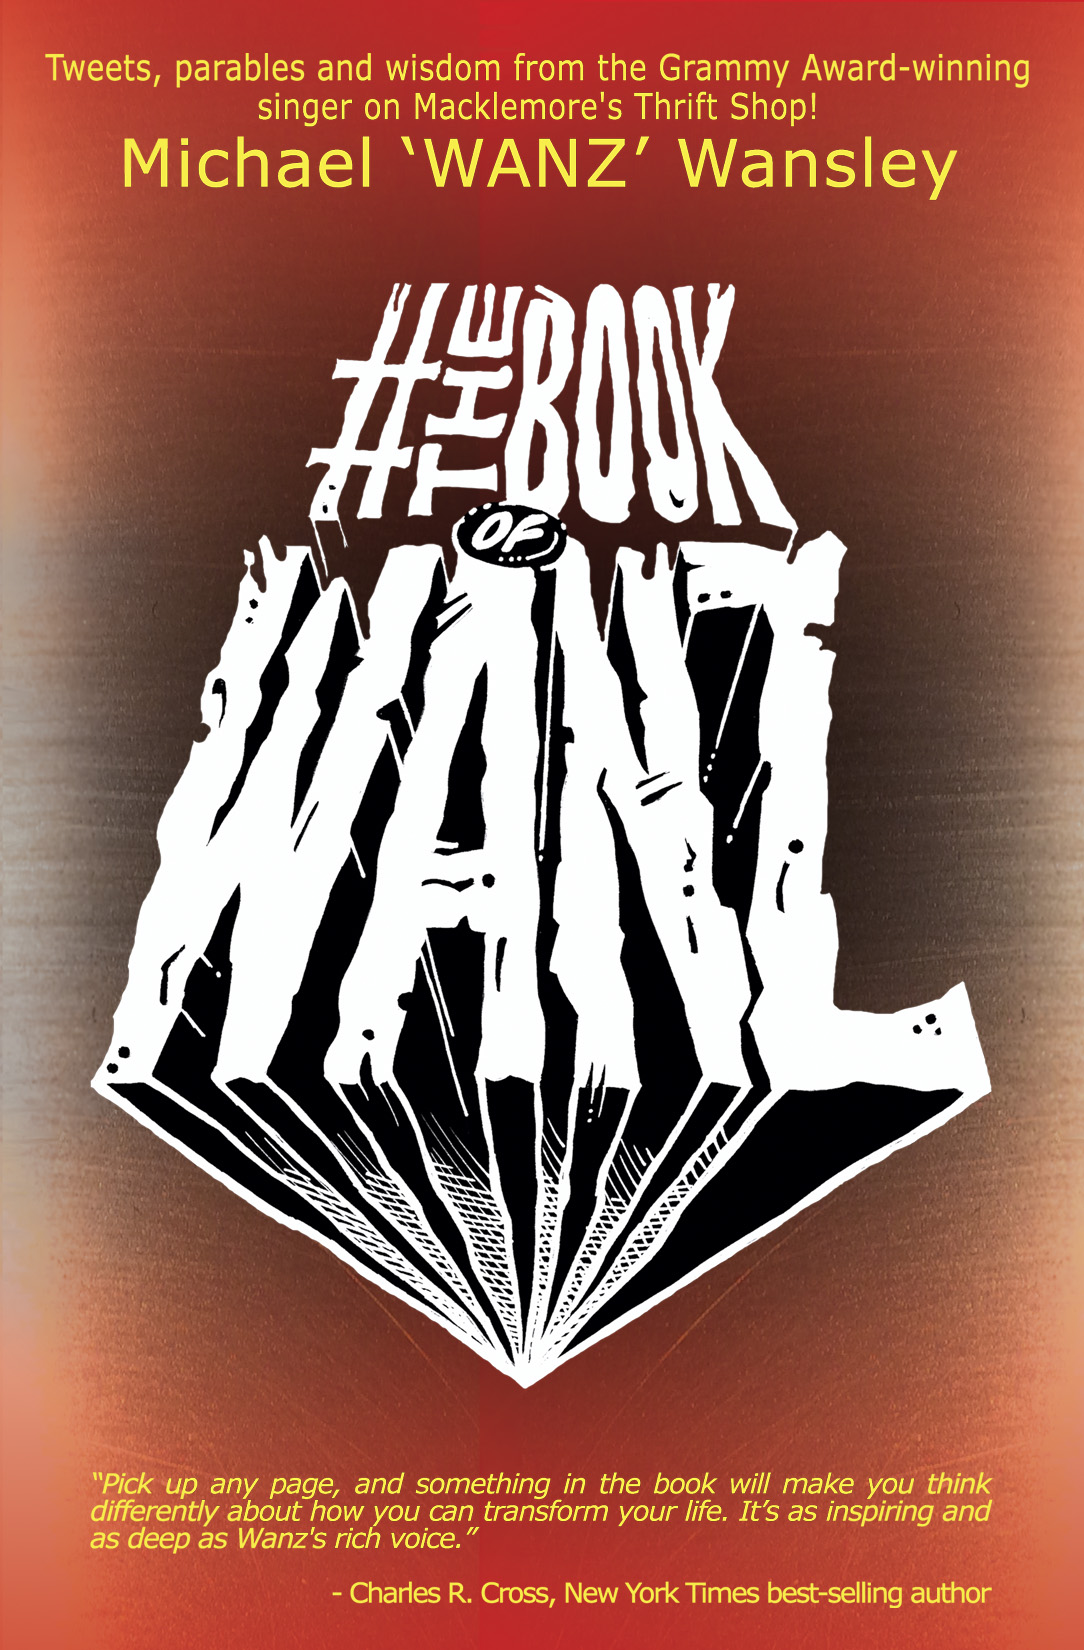 #TheBookOfWanz by Michael 'Wanz' Wansley